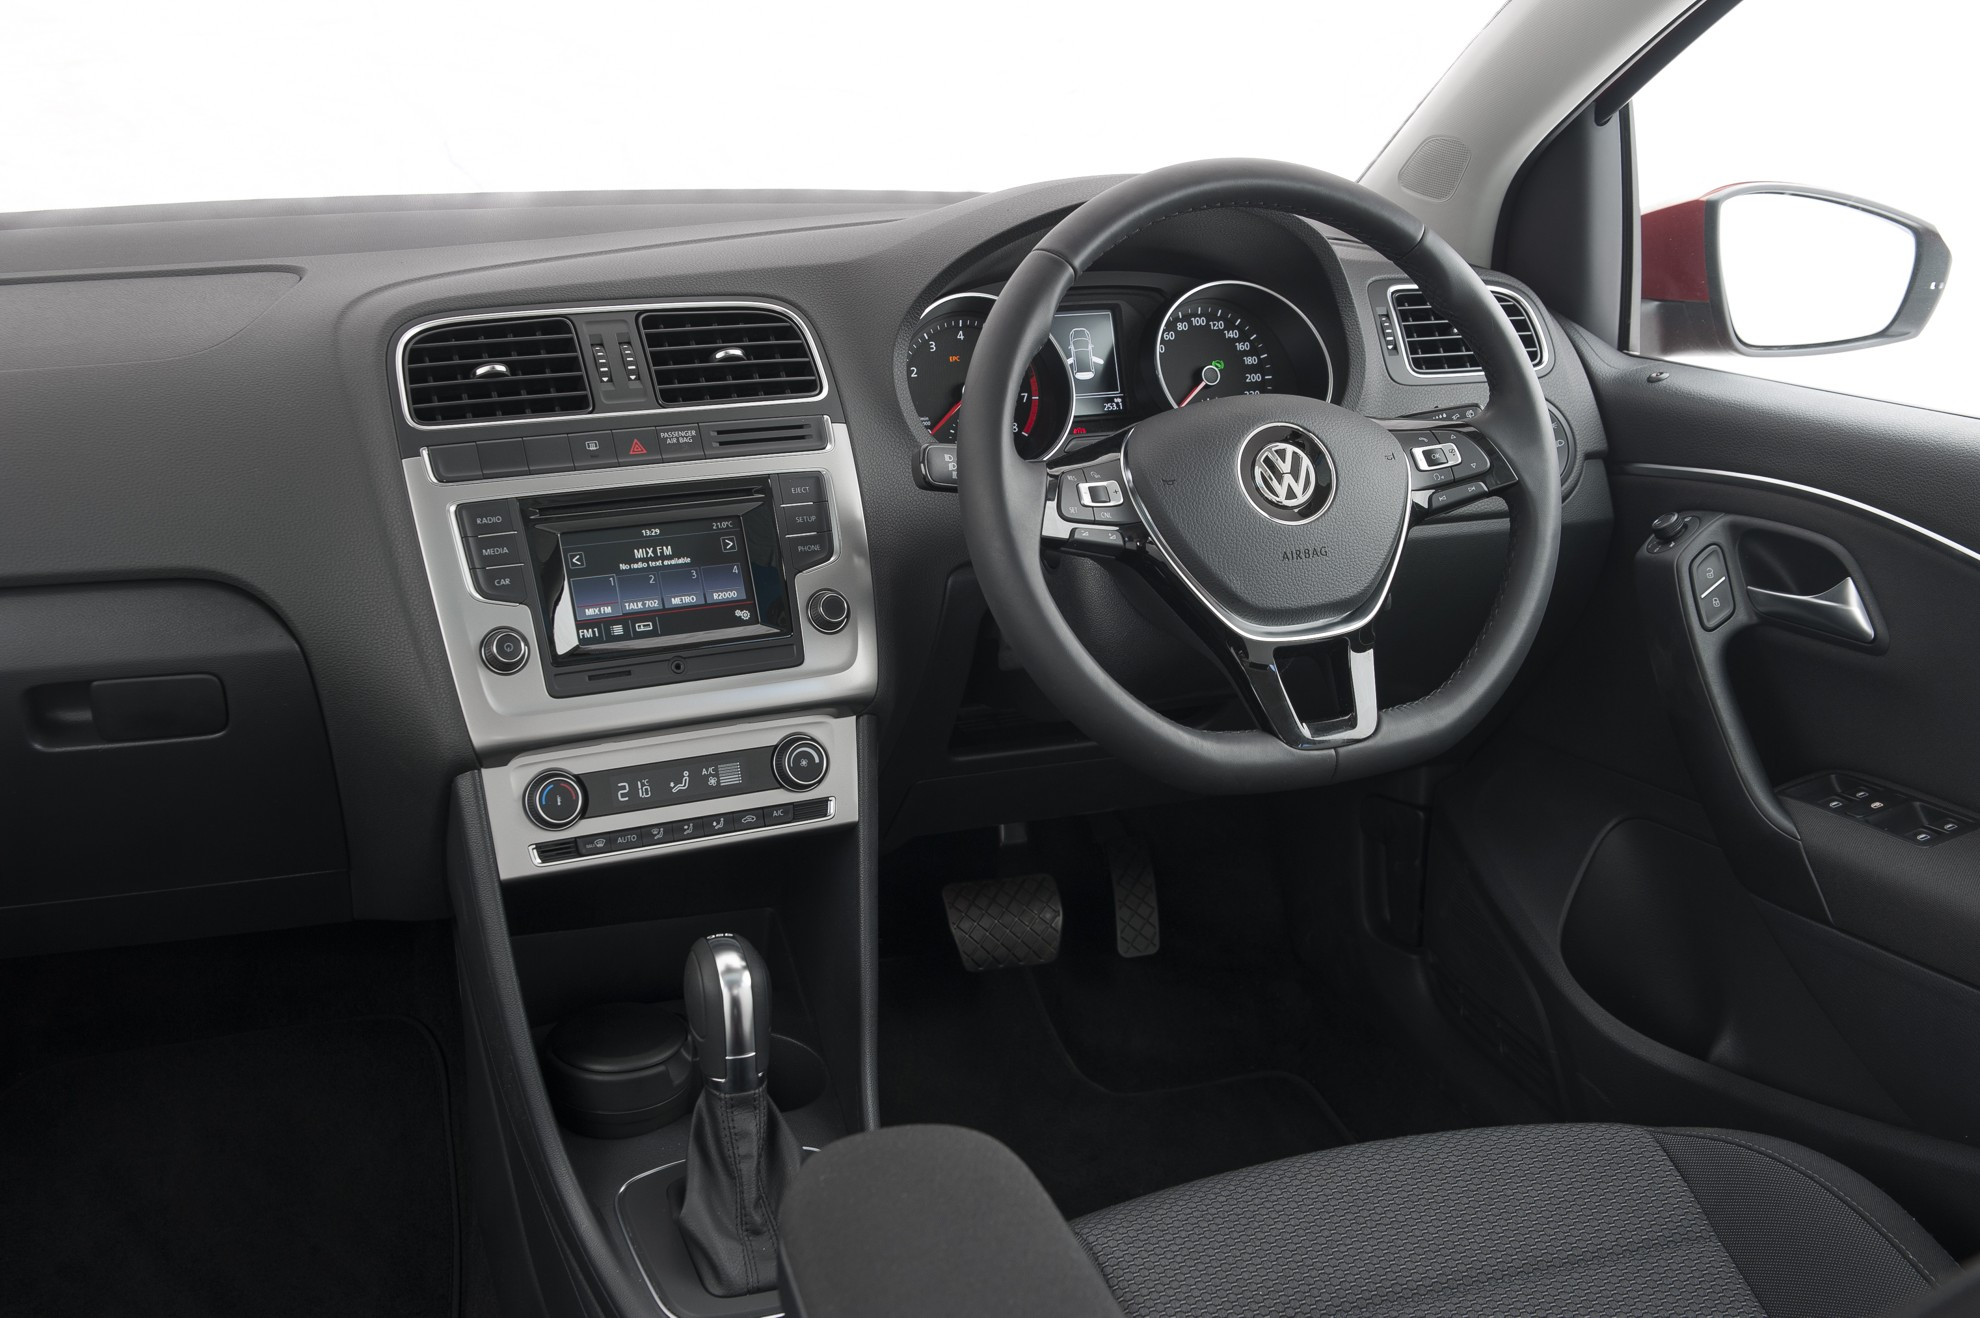 Volkswagen_Polo-Interior-2014